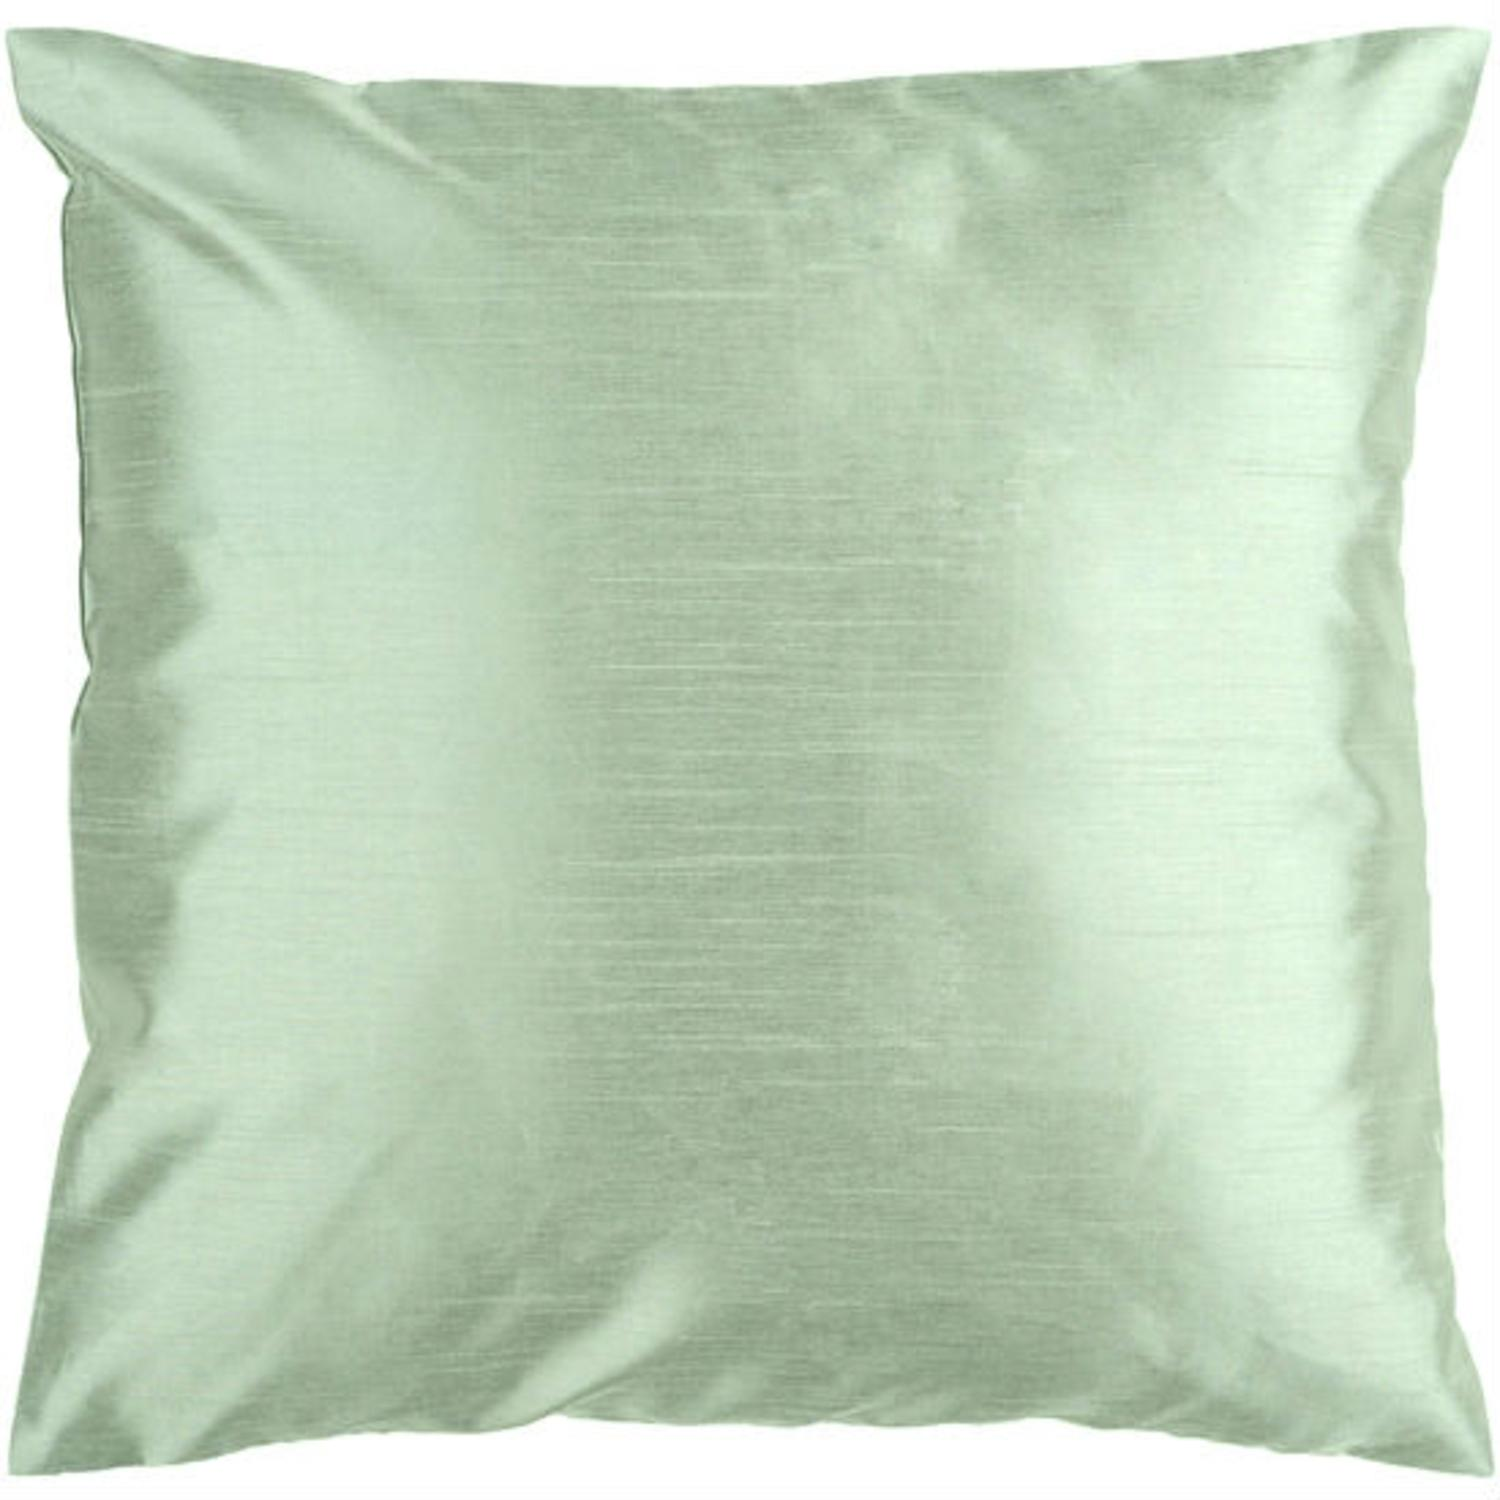 "22"" Shiny Solid Silver Seafoam Decorative Throw Pillow"